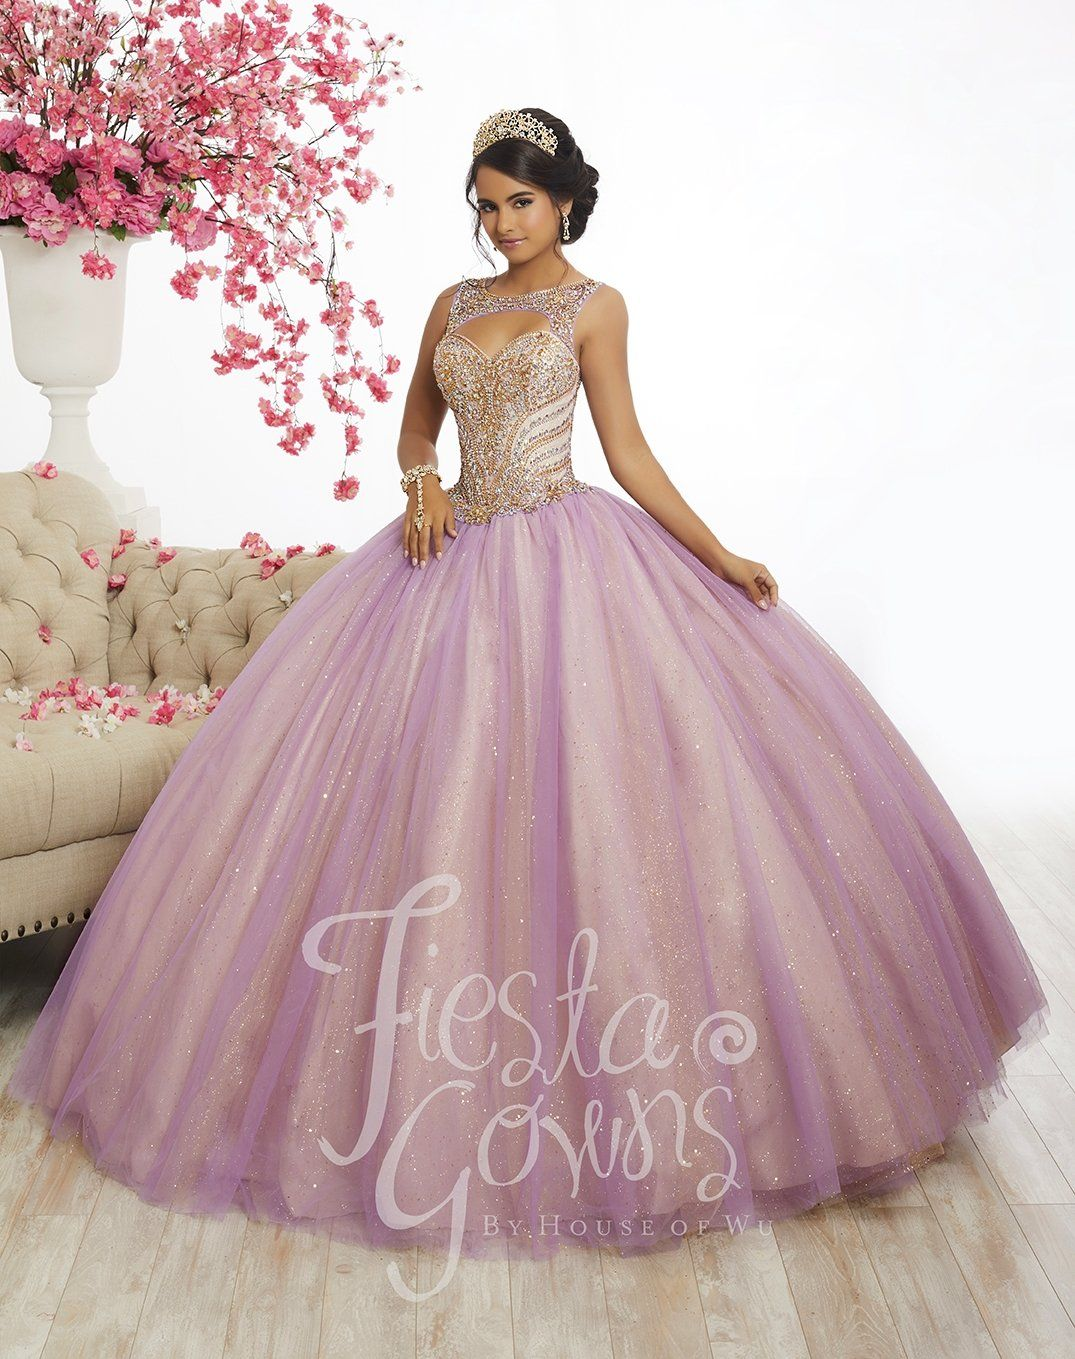 5709c847a03 Two-Tone Tulle Quinceanera Dress by Fiesta Gowns 56344 in 2019 ...